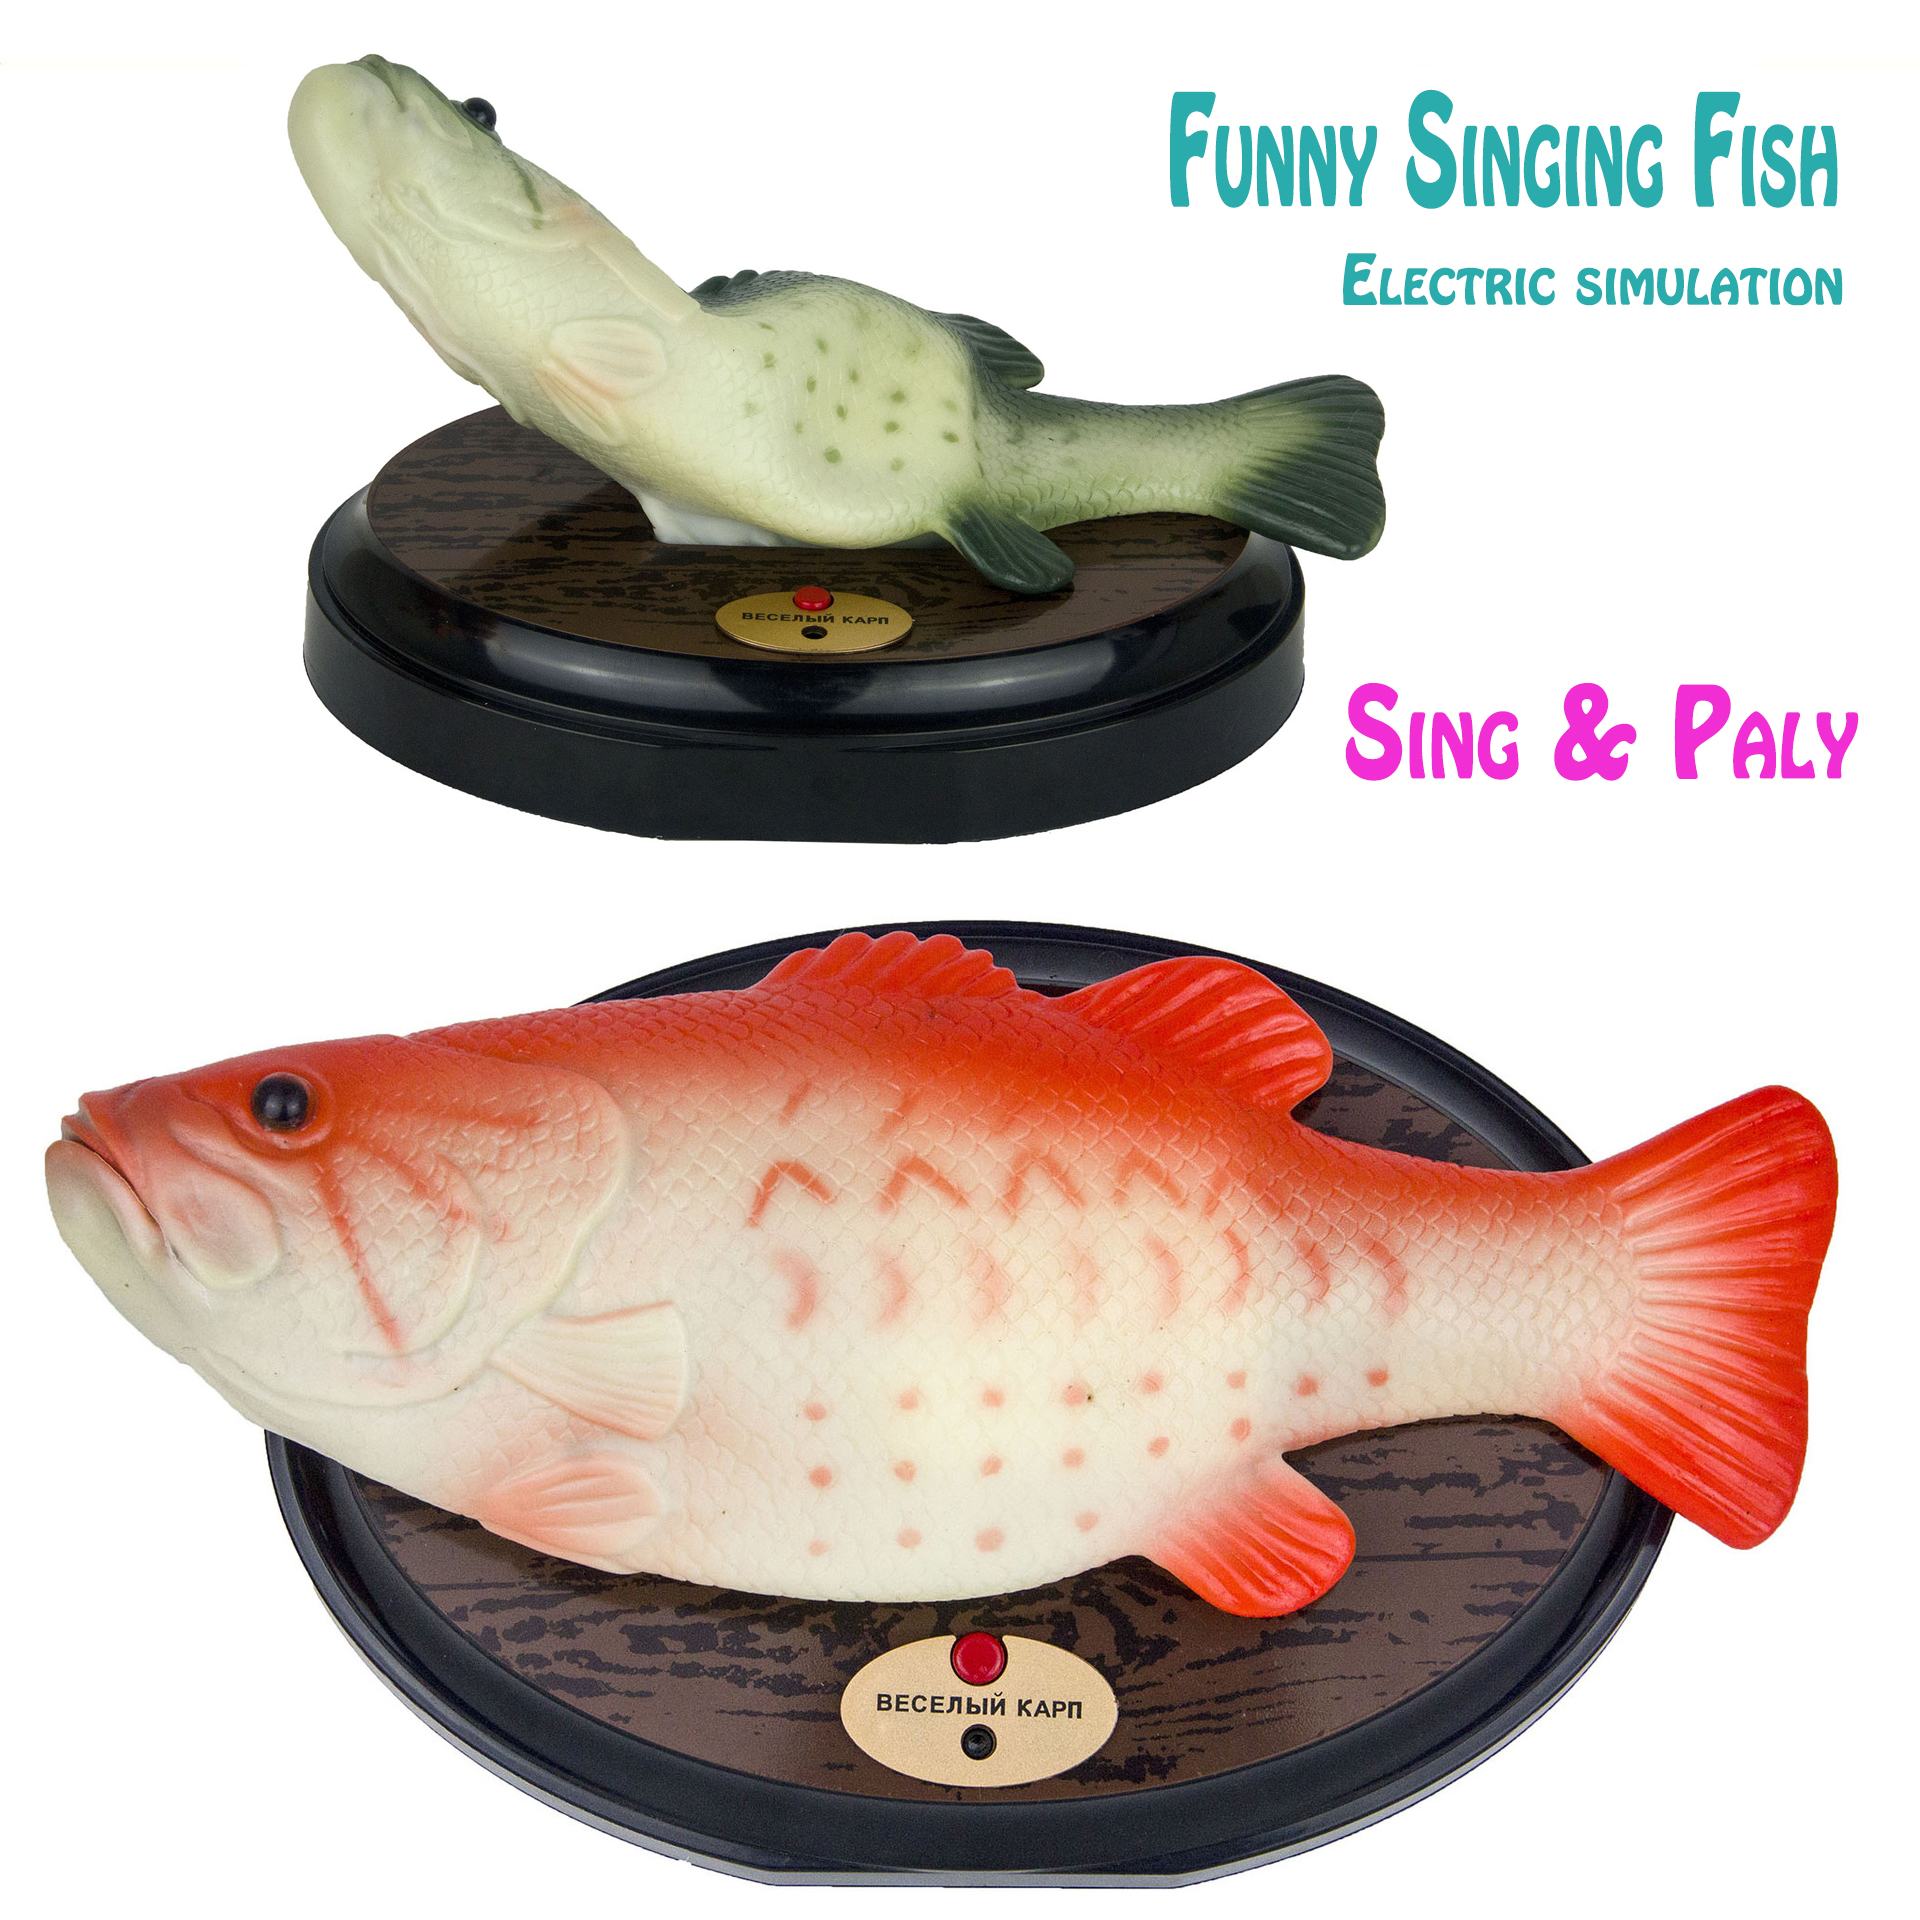 Funny Electronic Singing Plastic Fish Battery Powered Robot Toy Simulation Fishes Novelty Spoof Toys Halloween Decorating PlayFunny Electronic Singing Plastic Fish Battery Powered Robot Toy Simulation Fishes Novelty Spoof Toys Halloween Decorating Play